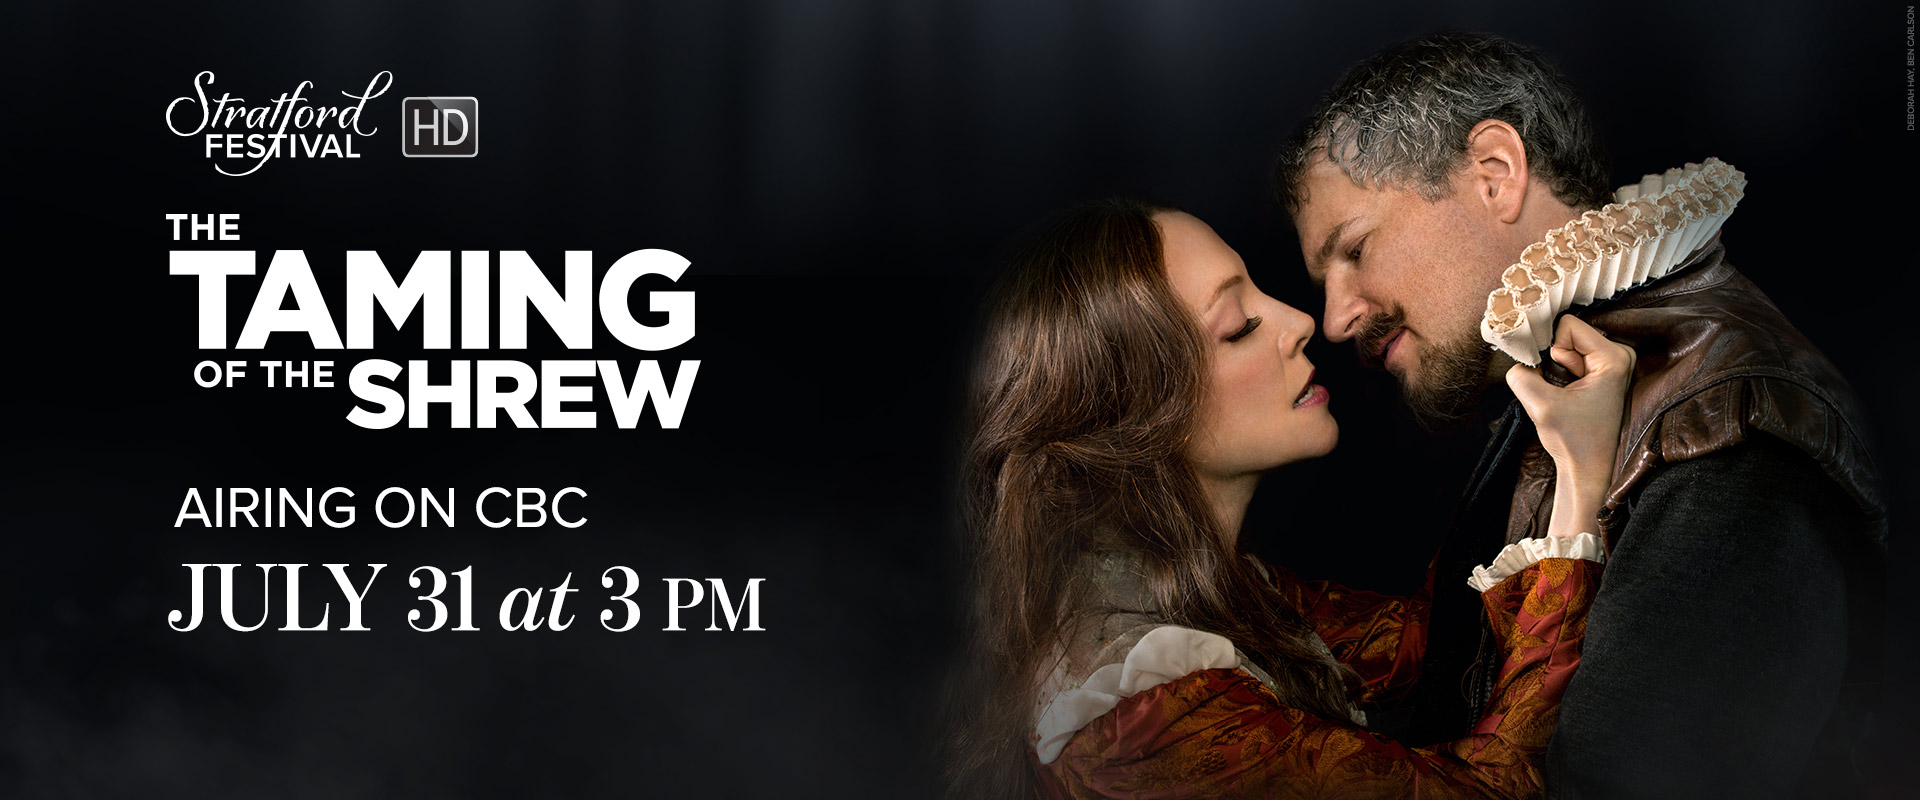 The Taming of the Shrew Airing on CBC July 31 at 3 pm